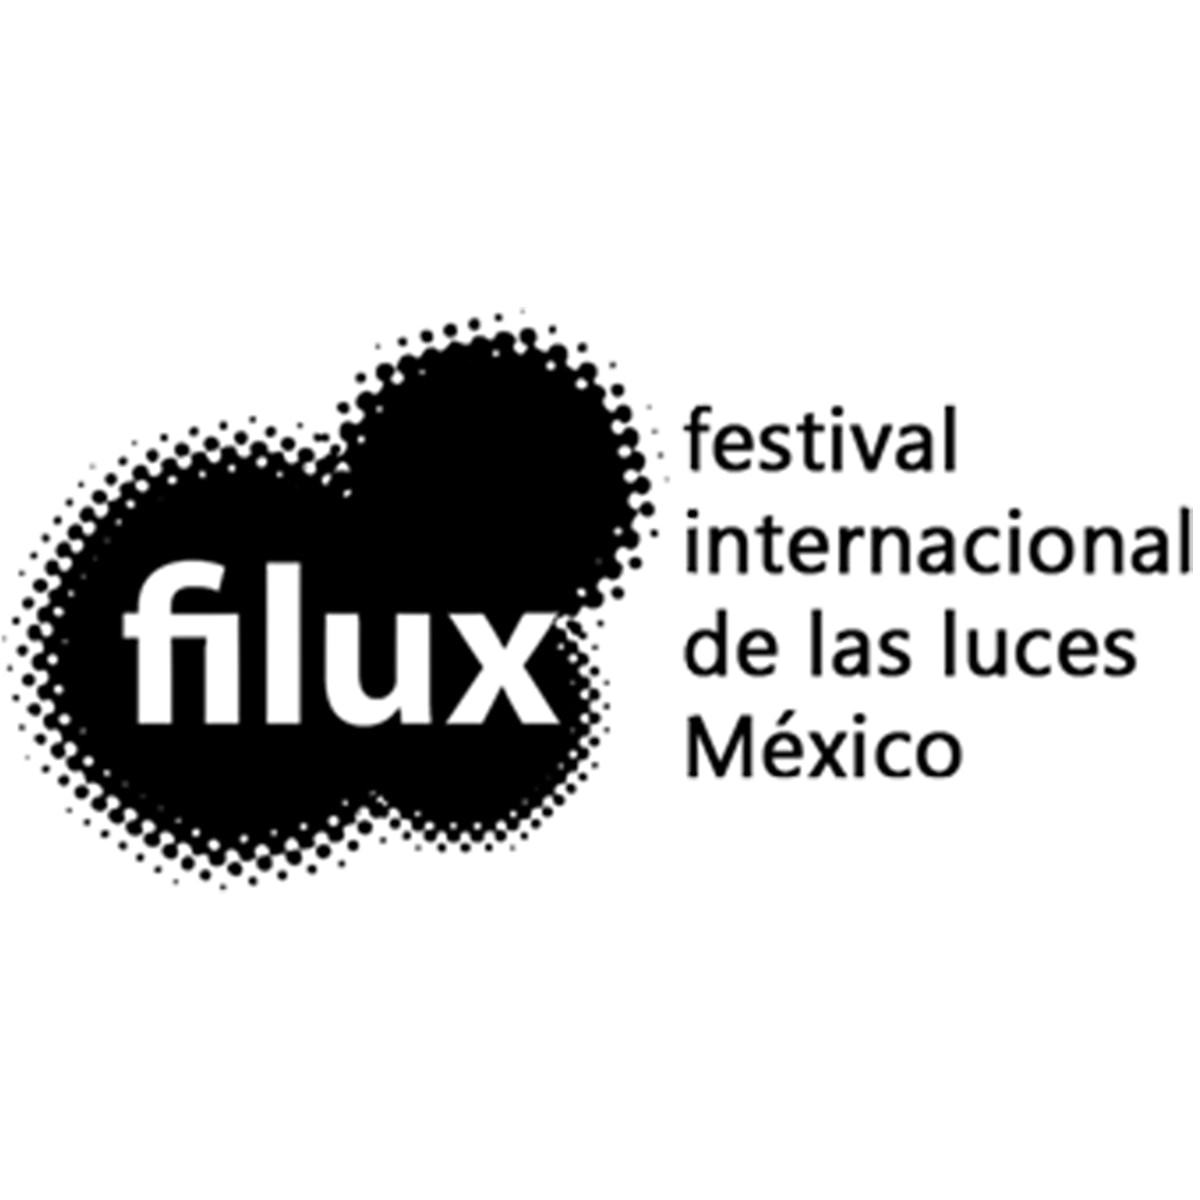 FILUX, Light festival of Mexico